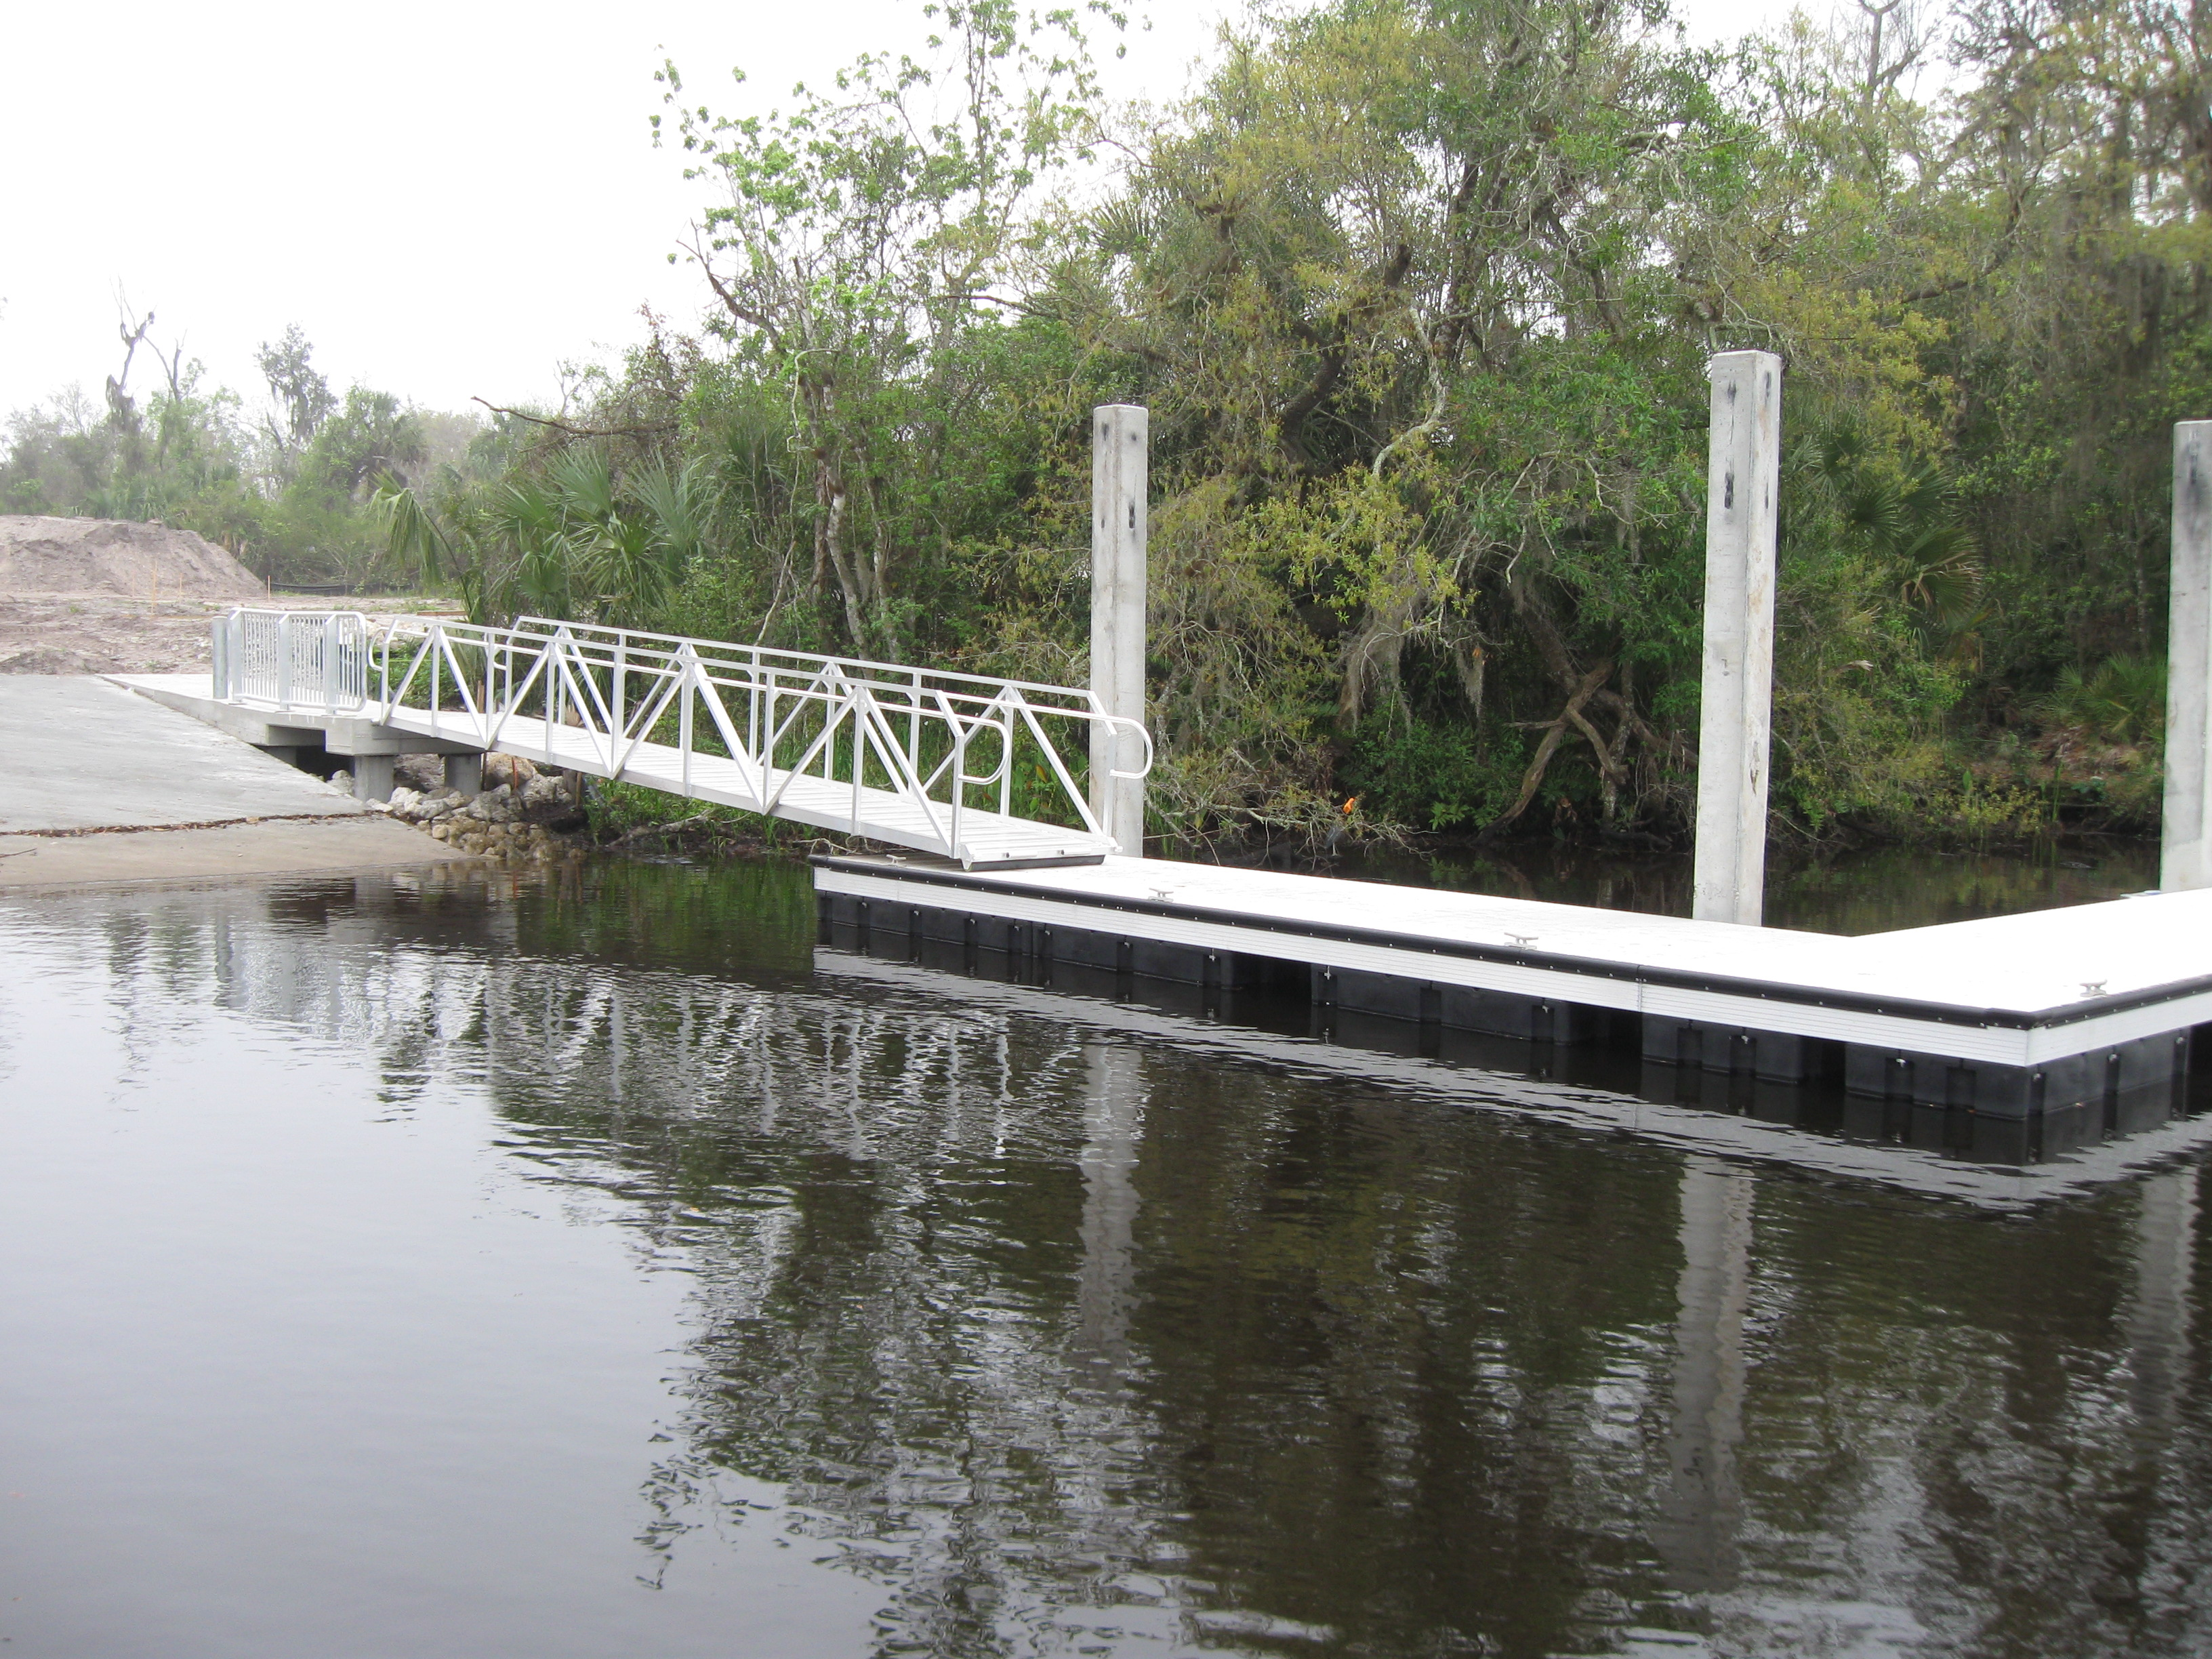 Department parks and recreation lettuce lake park - Florida building code public swimming pools ...